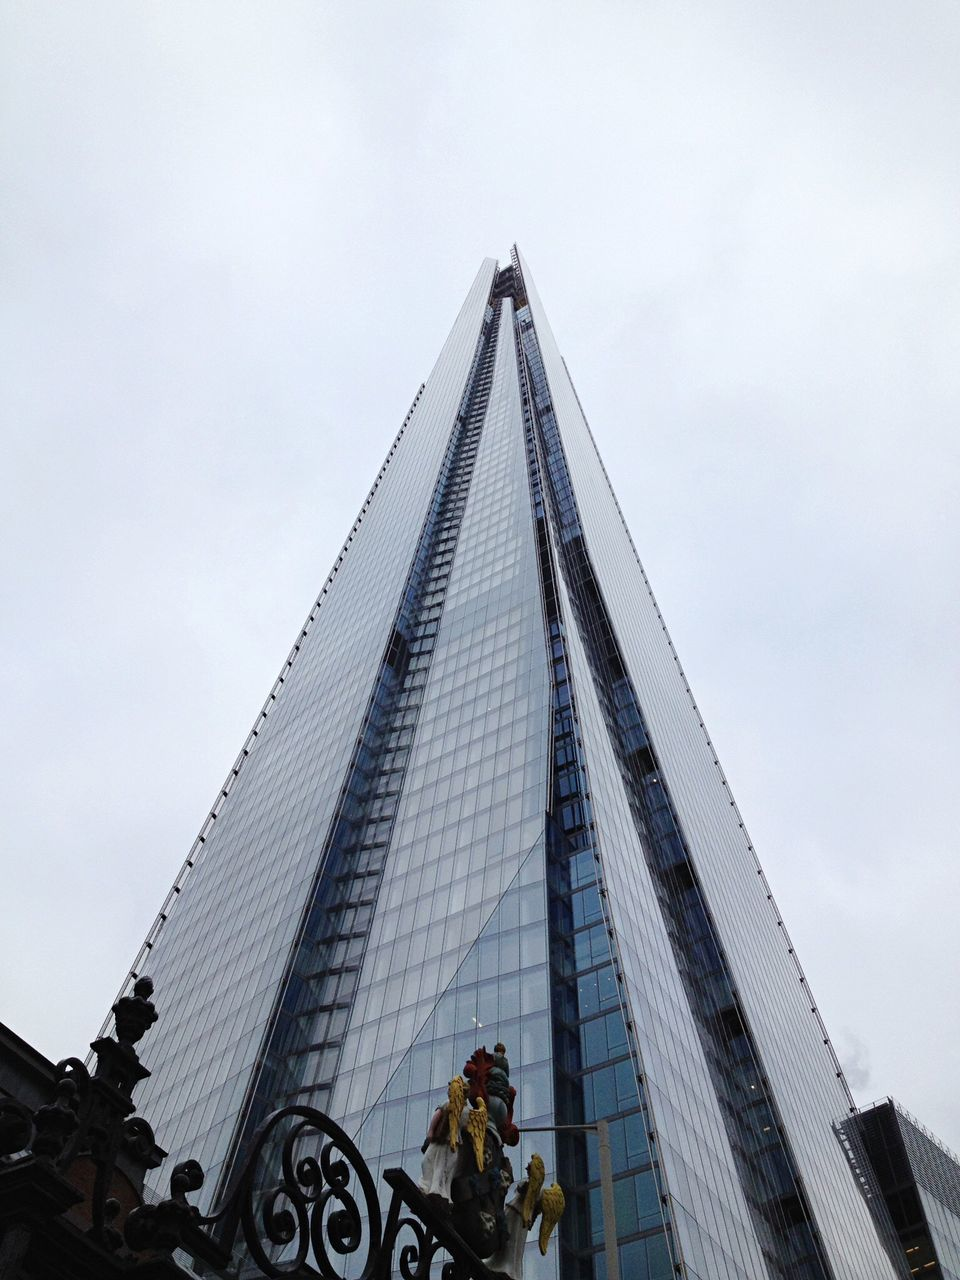 Low Angle View Of Shard London Bridge Against Clear Sky